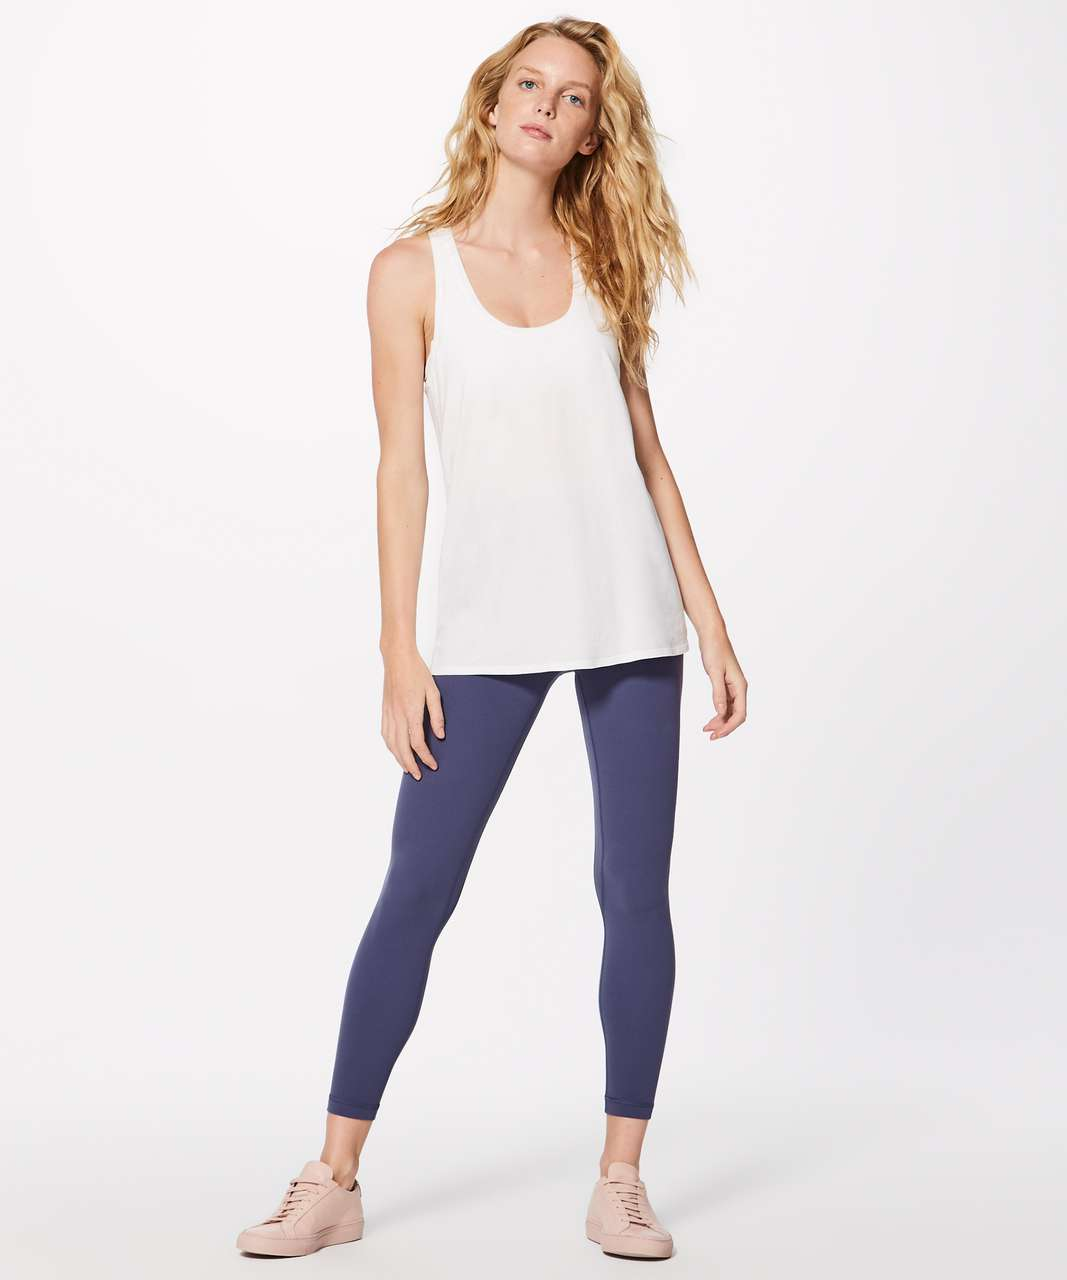 Lululemon Love Tank - White